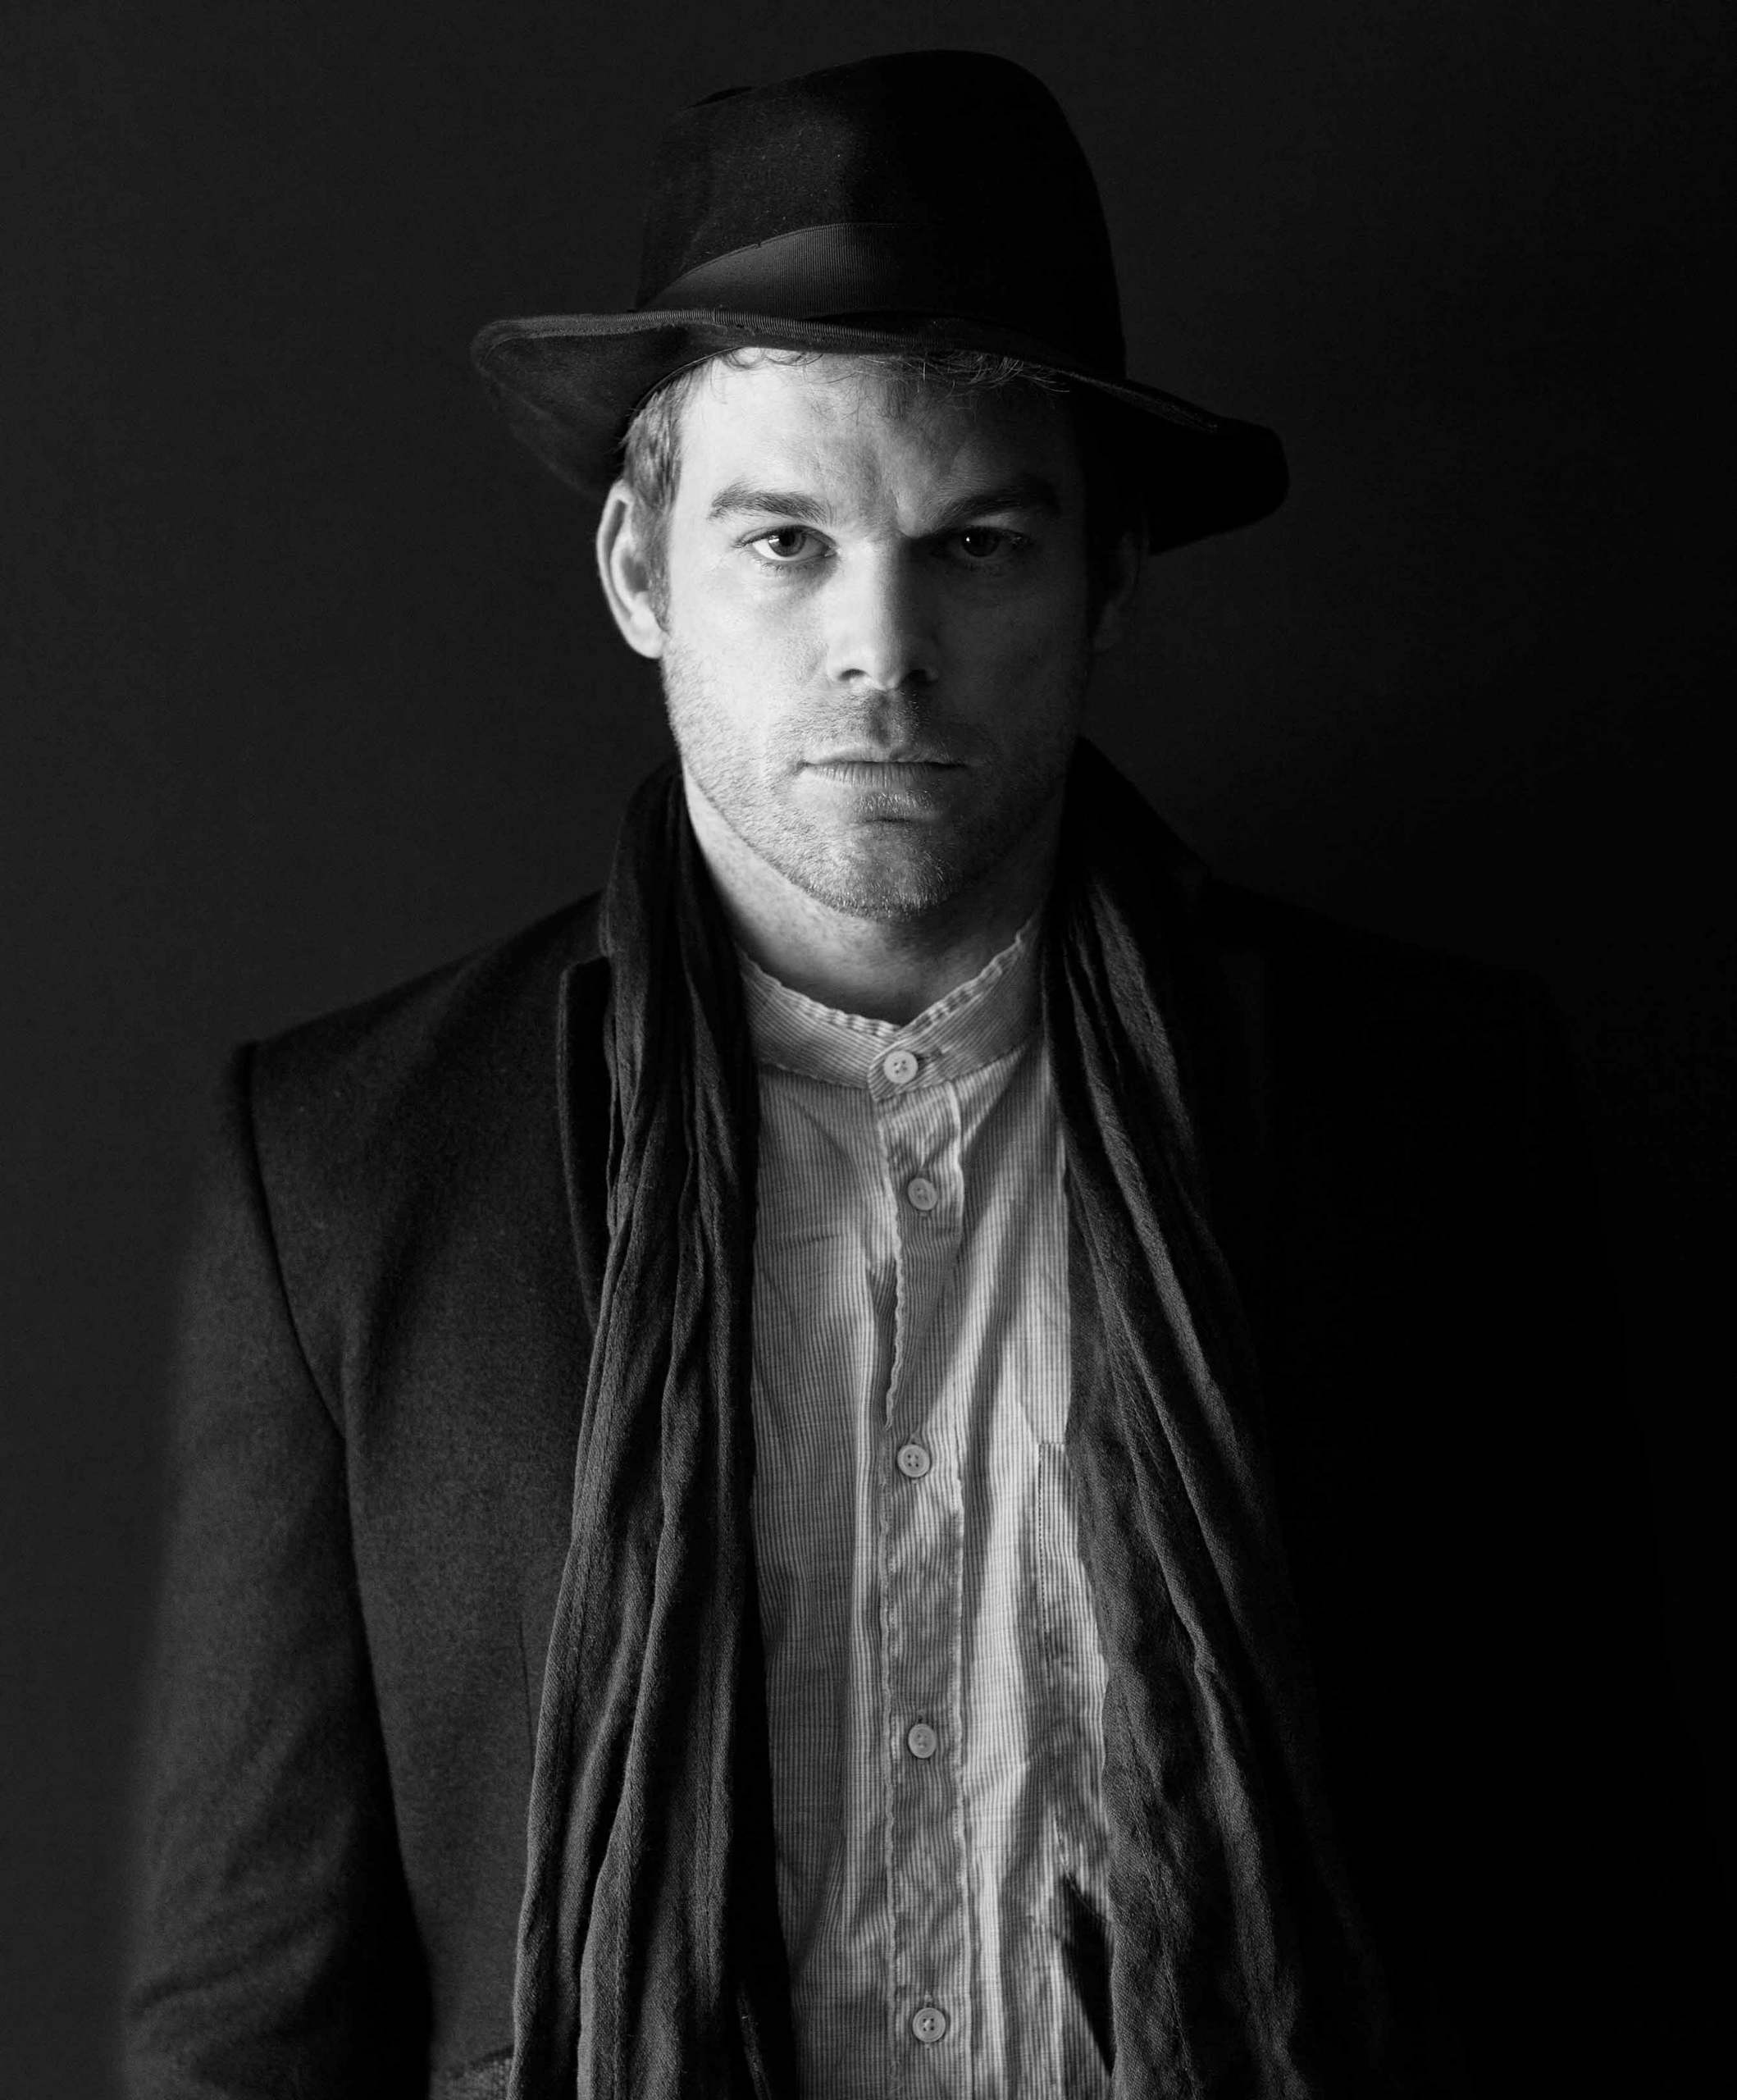 MICHAEL C. HALL - Isaac C. Hill (ancien psychiatre, savant fou) ► LIBRE Michael-C-Hall-Photoshoot-for-Bullett-Magazine-michael-c-hall-26788974-2118-2560